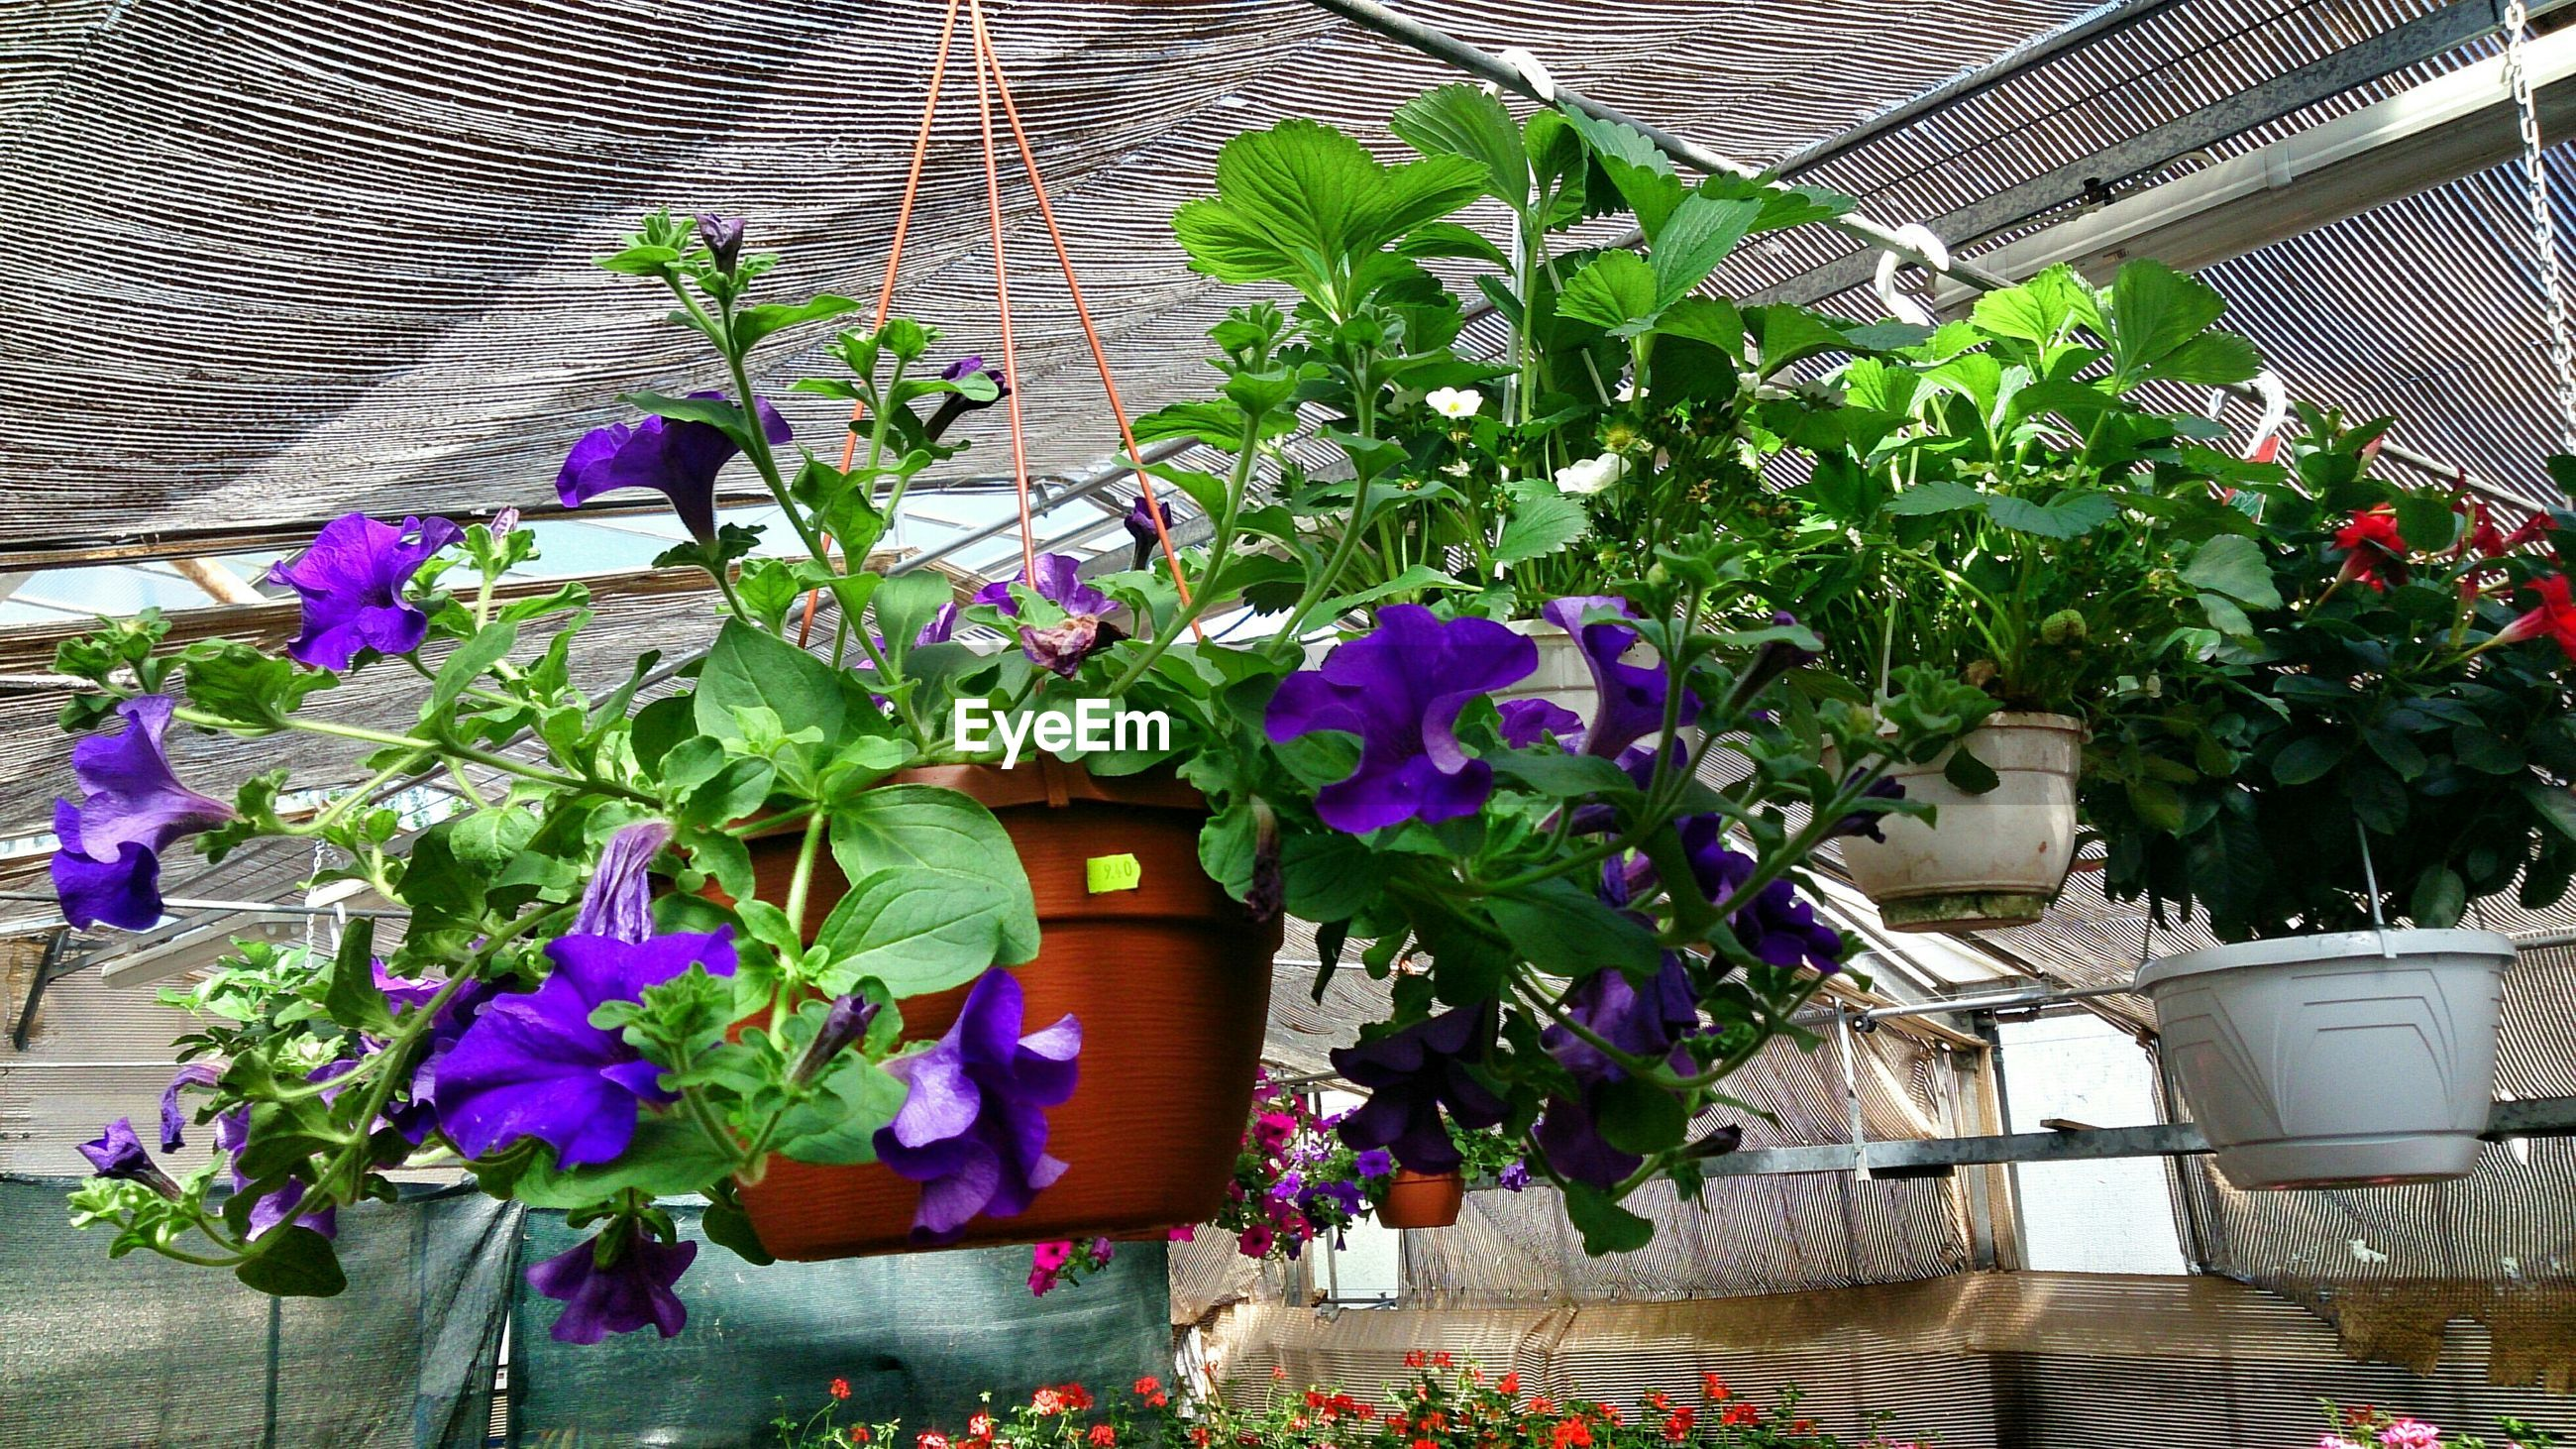 Potted flower plants hanging in plant nursery